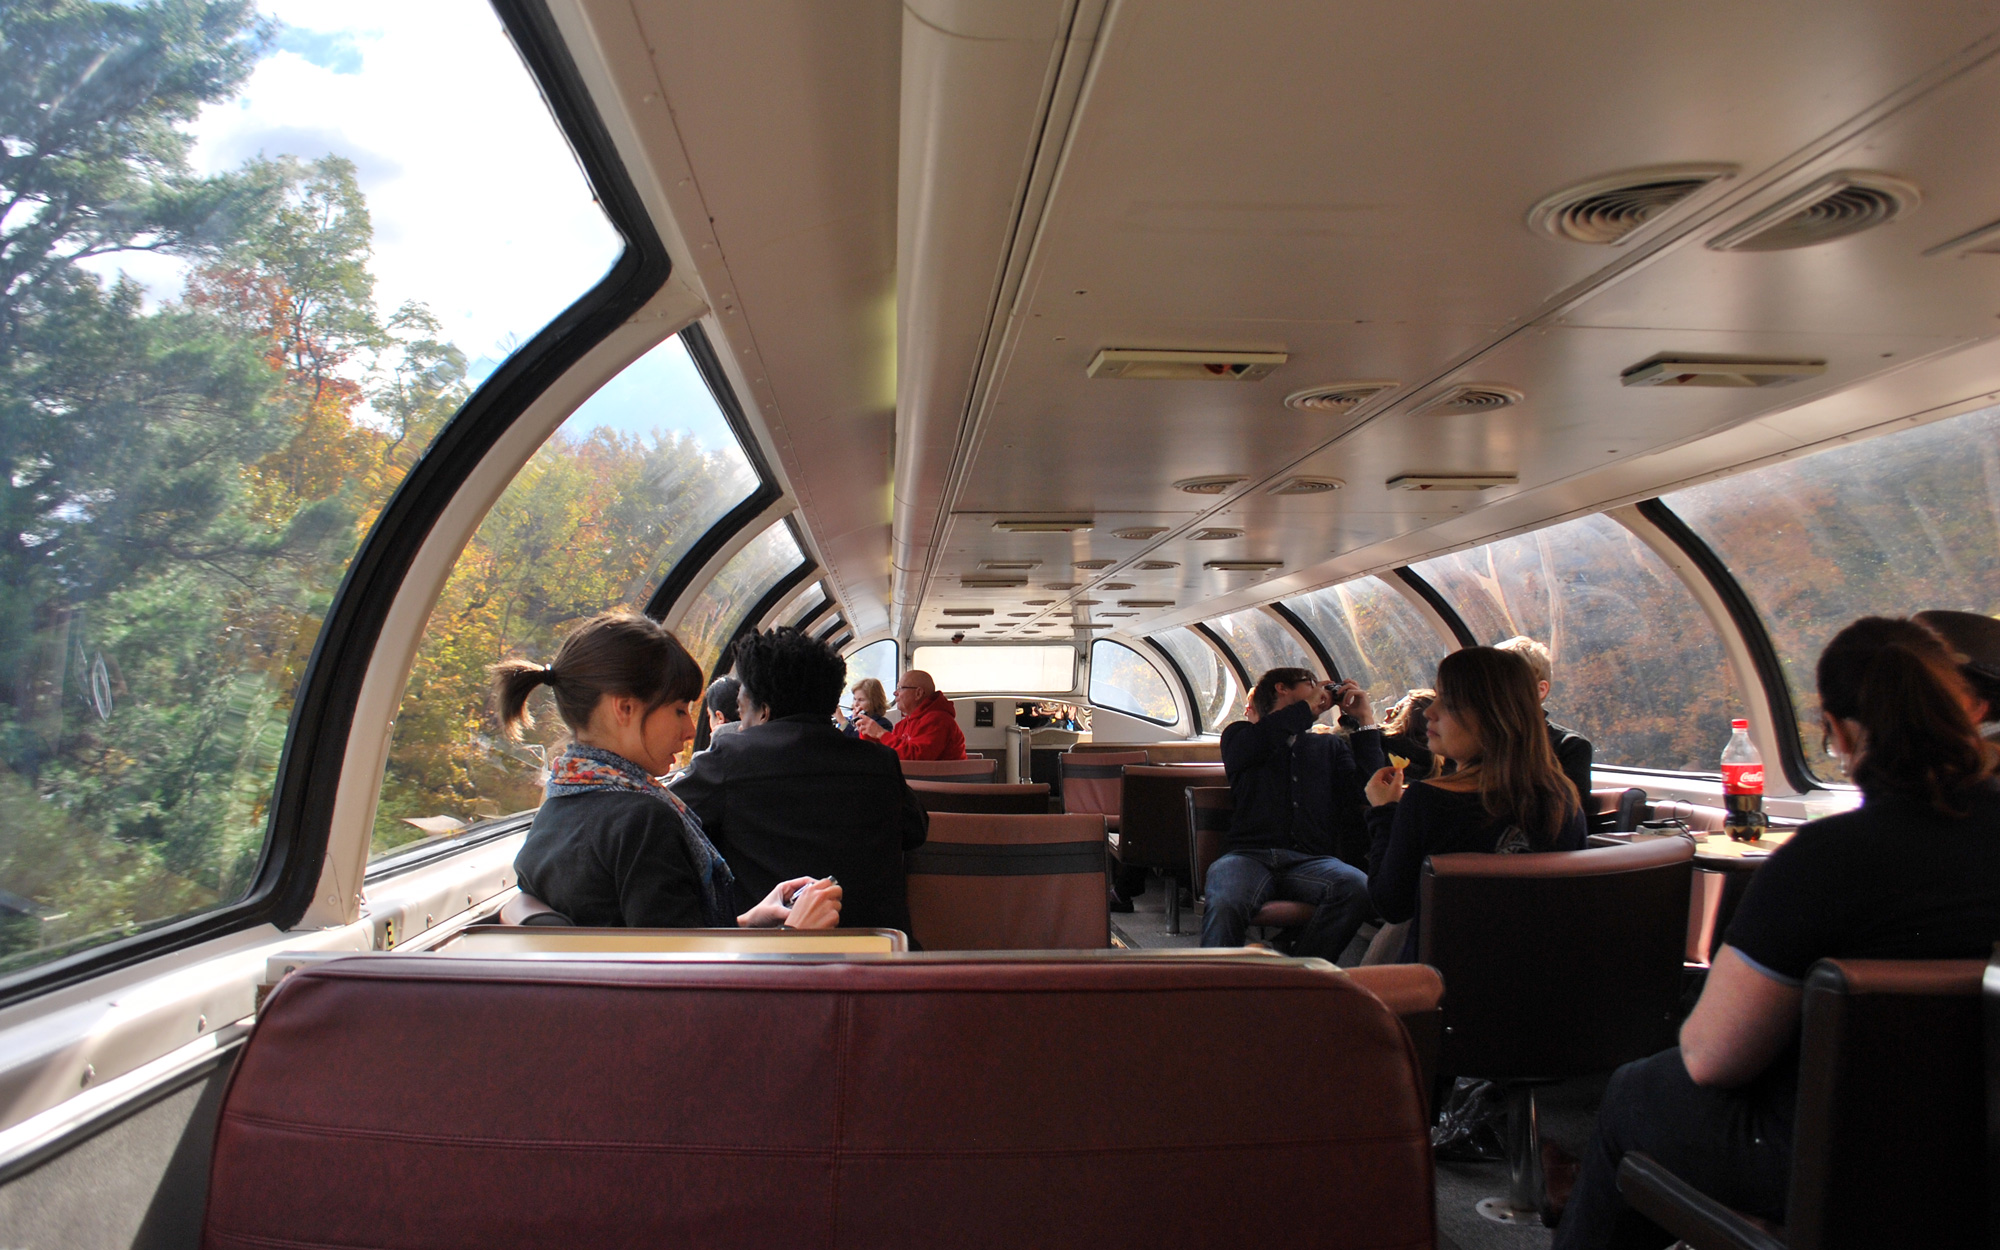 Dome Car coming back to Amtrak